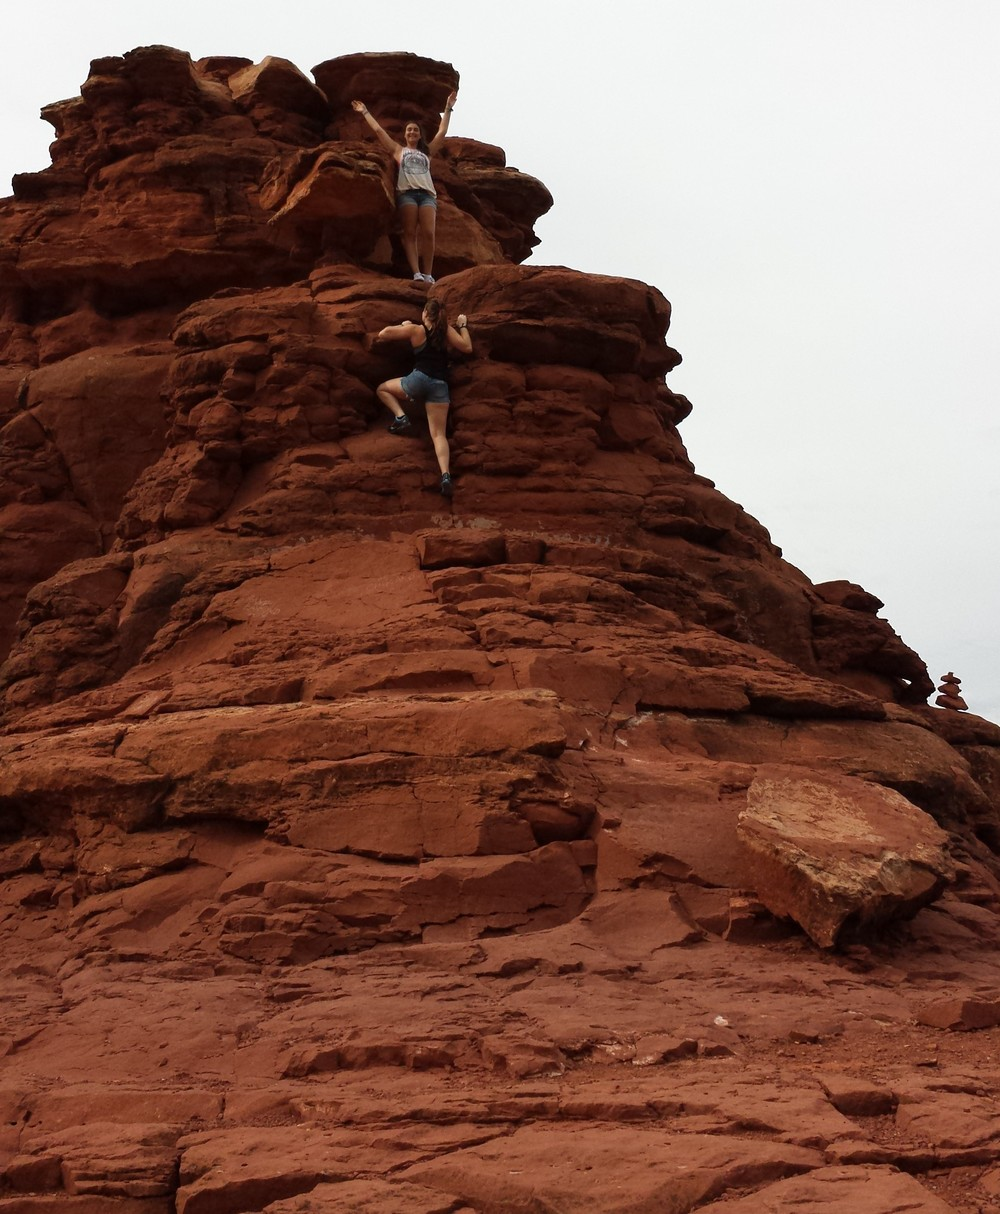 Does your fundraising activity feel like you're climbing this rock mountain?  Susan Axelrod offers strategies and tools to help you reach the top in confidence!